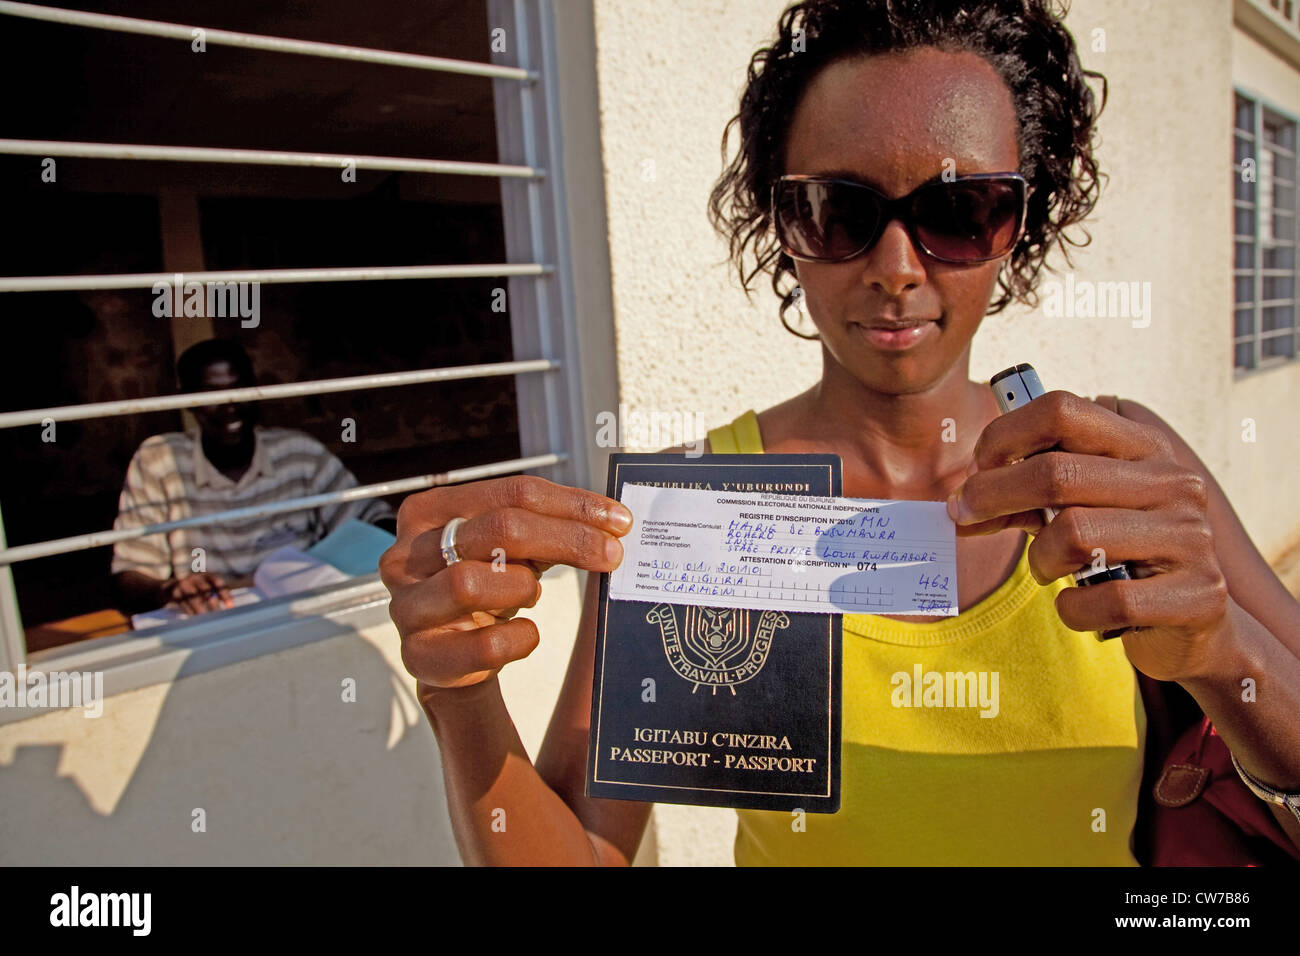 young woman has just become registered for the national election 2010 and is proudly presenting the written confirmation - Stock Image